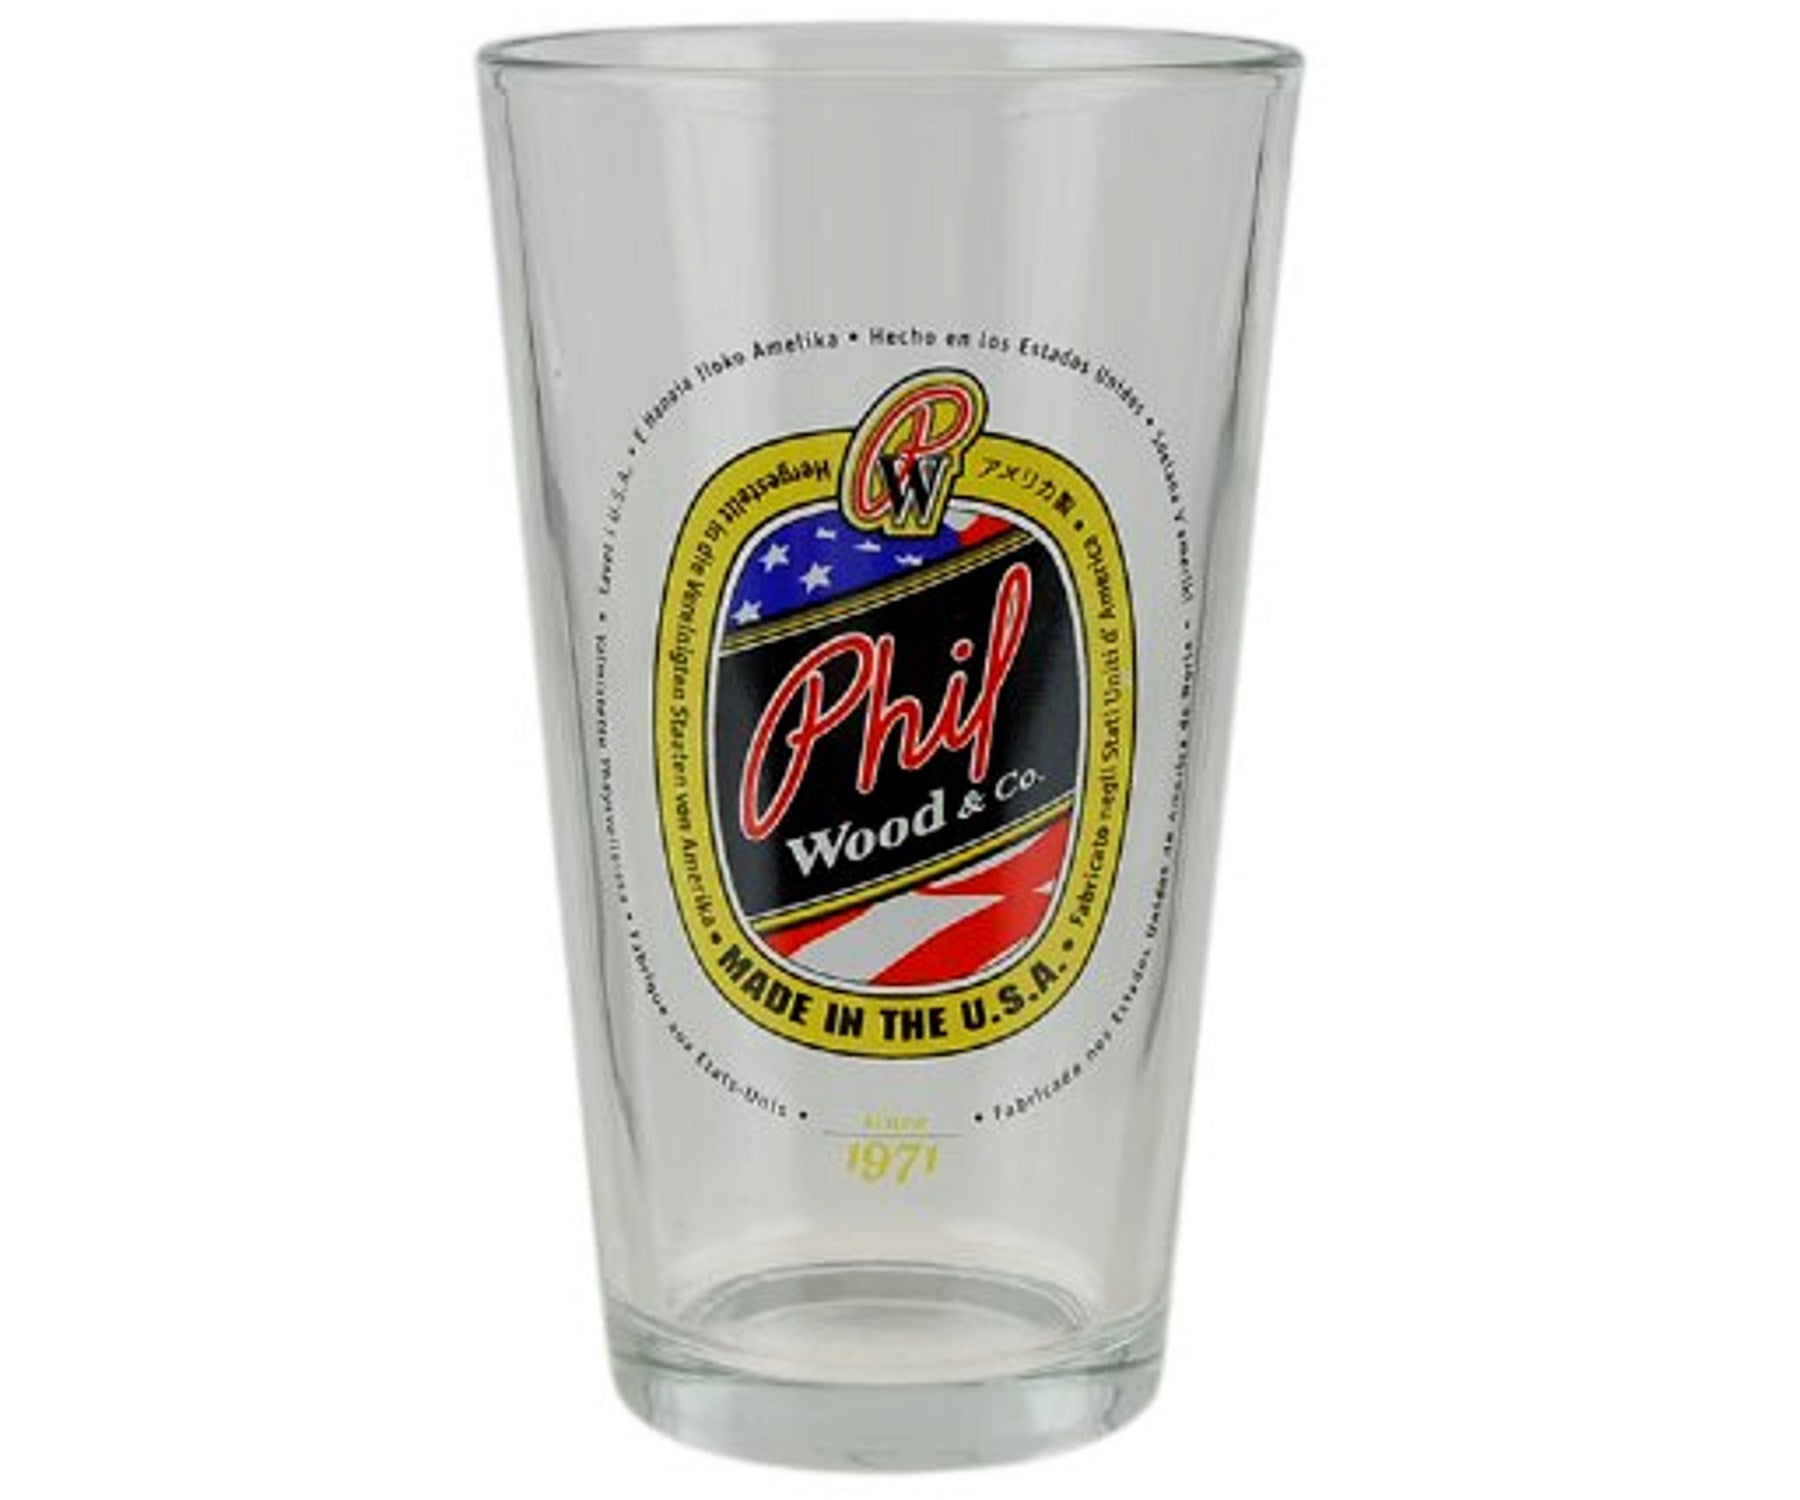 Phil Wood pint glass - Retrogression